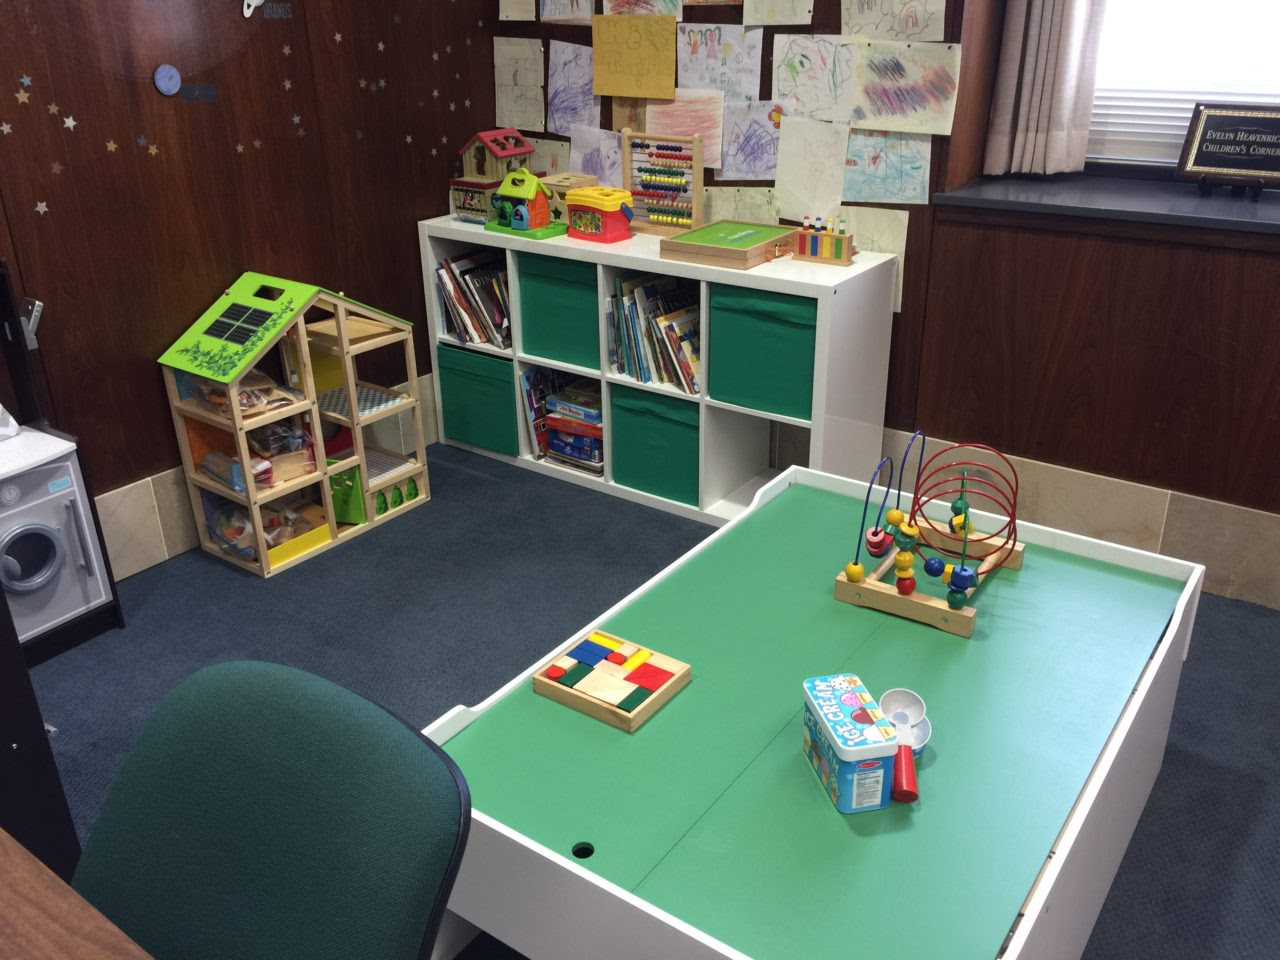 Safe Families Office Childrens Corner Receives Makeover Avlf